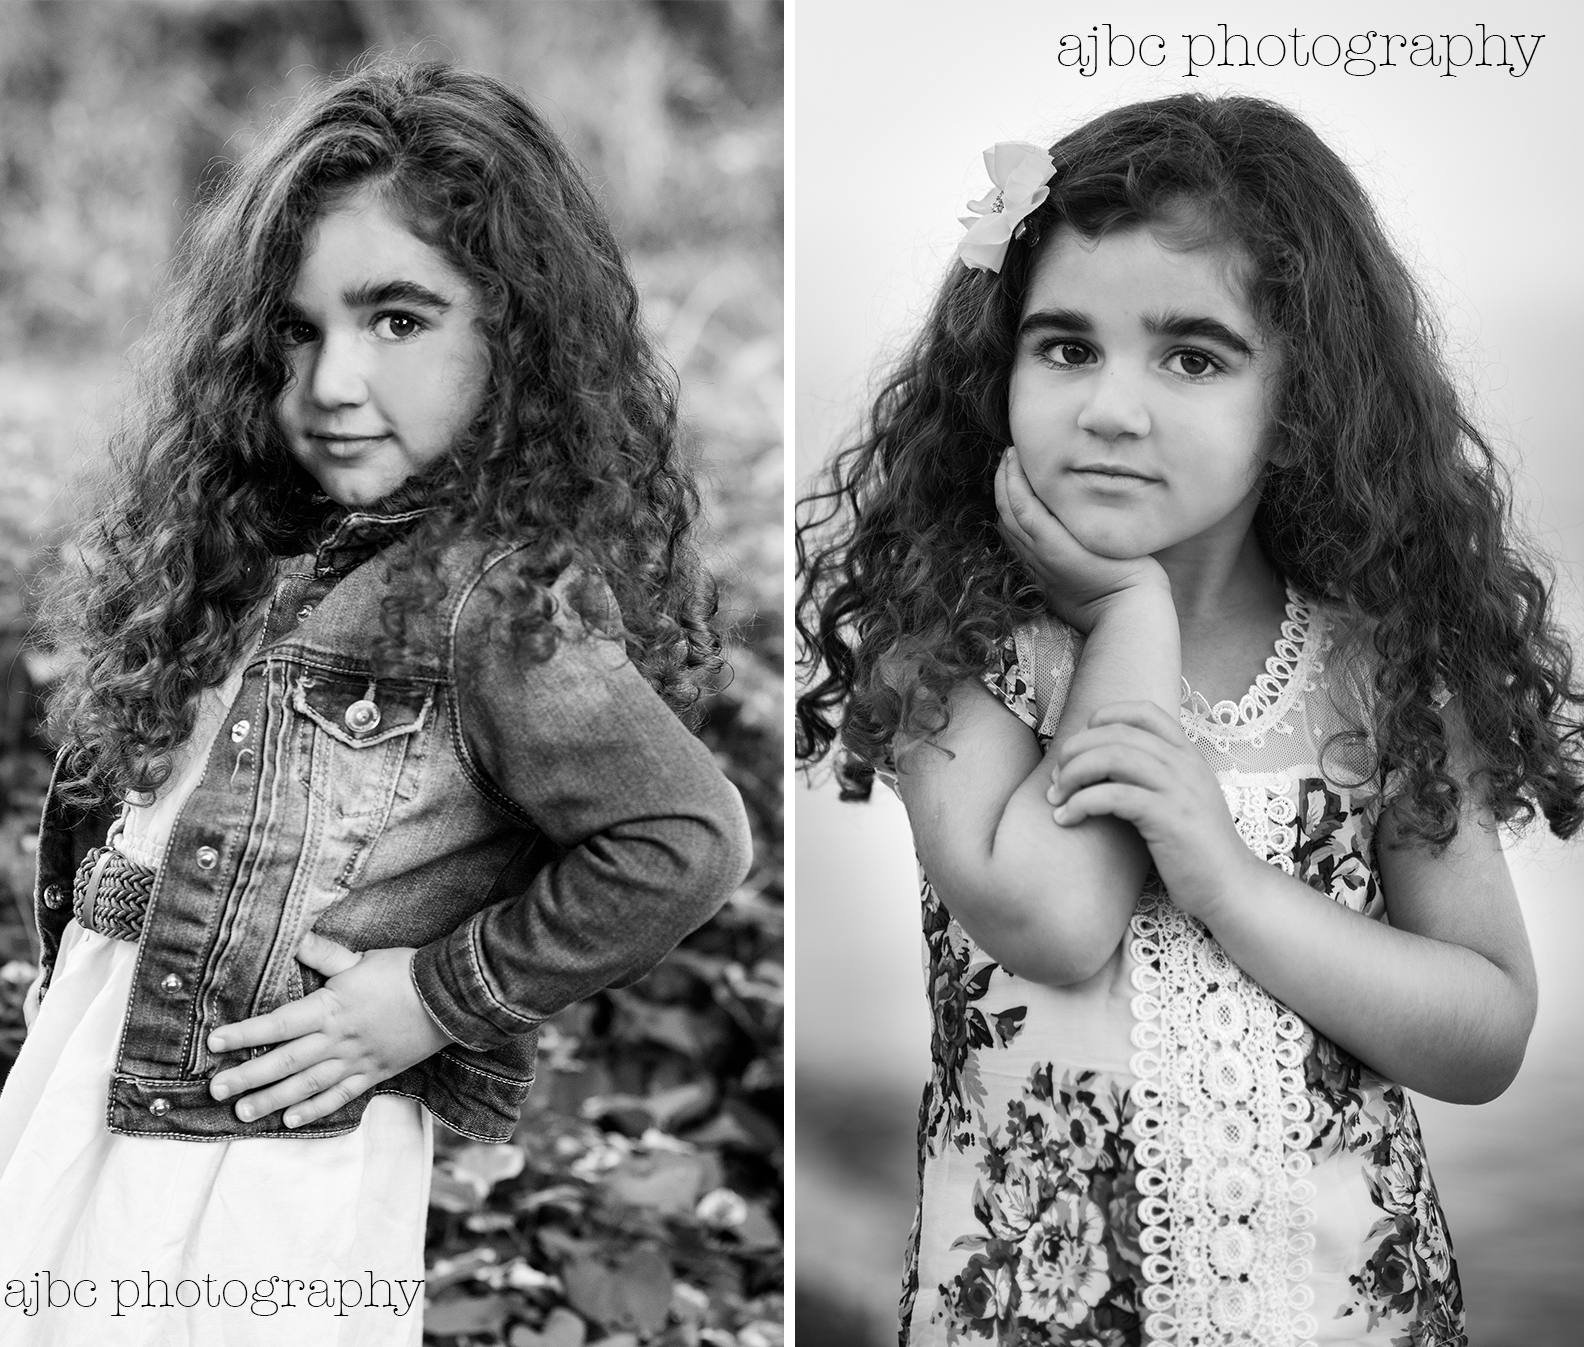 ajbcphotography-porthuron-michigan-photographer-child-kid-fashion-beach-boho.jpg